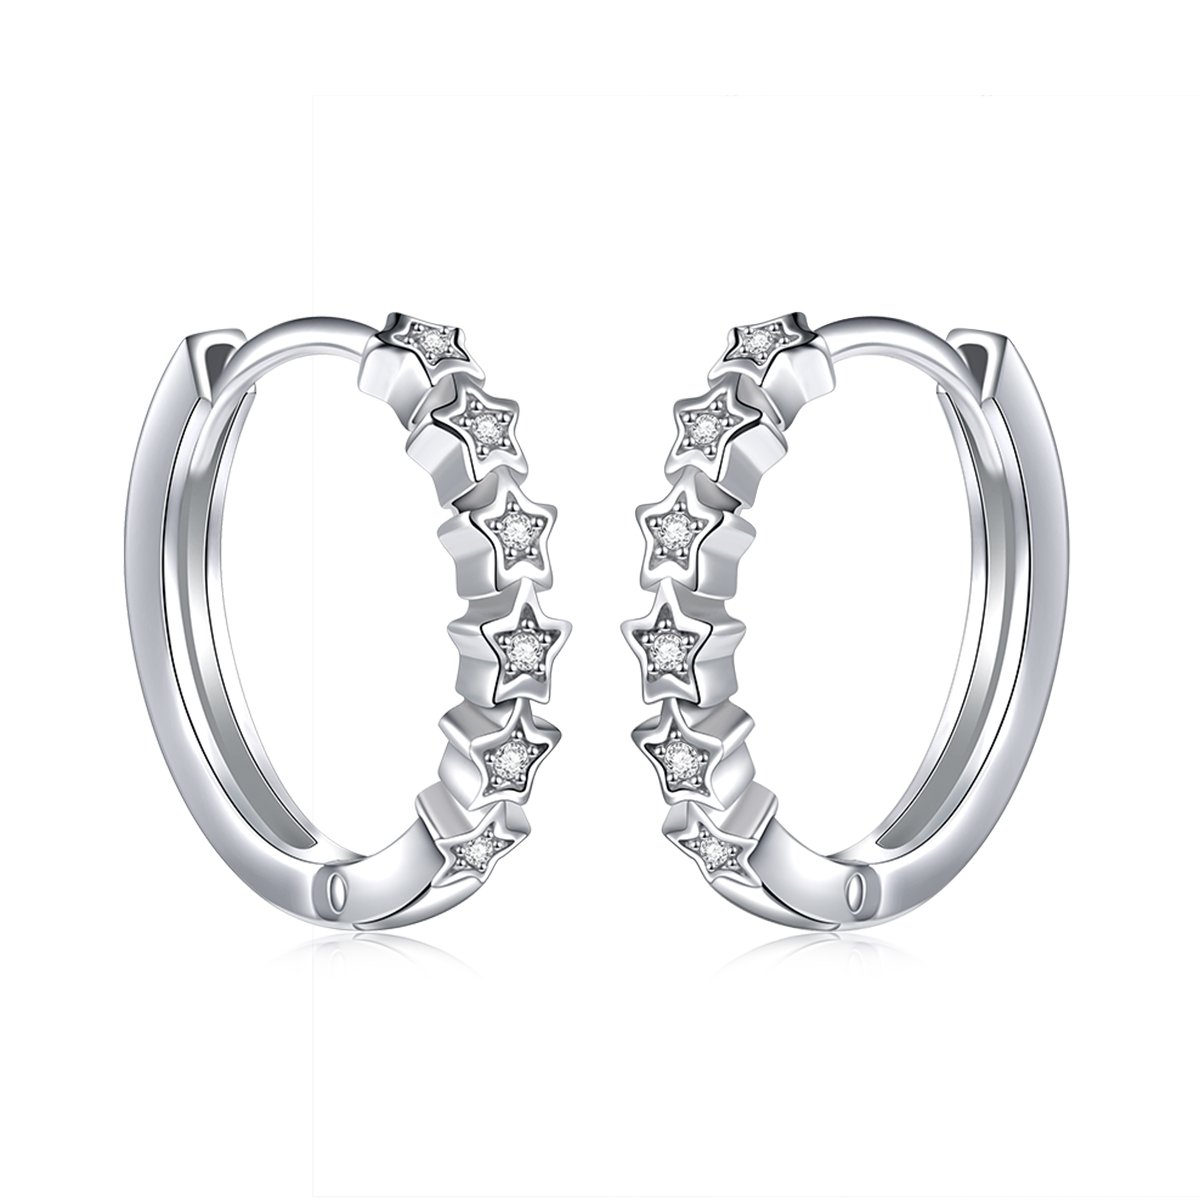 925 Sterling Silver Pave Cz Star Small Hoop Earrings for Women (Style 3)